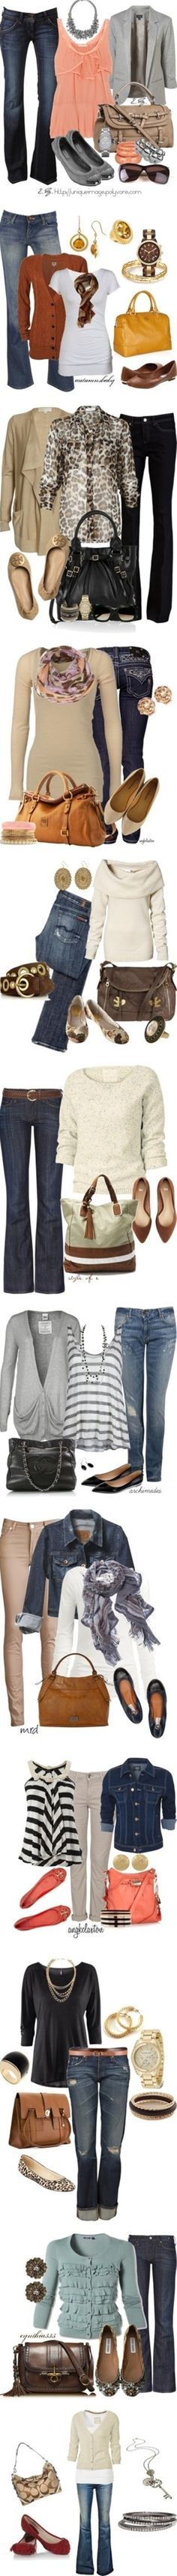 Fall looks for all different shapes and sizes. Looks for work, school, or casual wear.